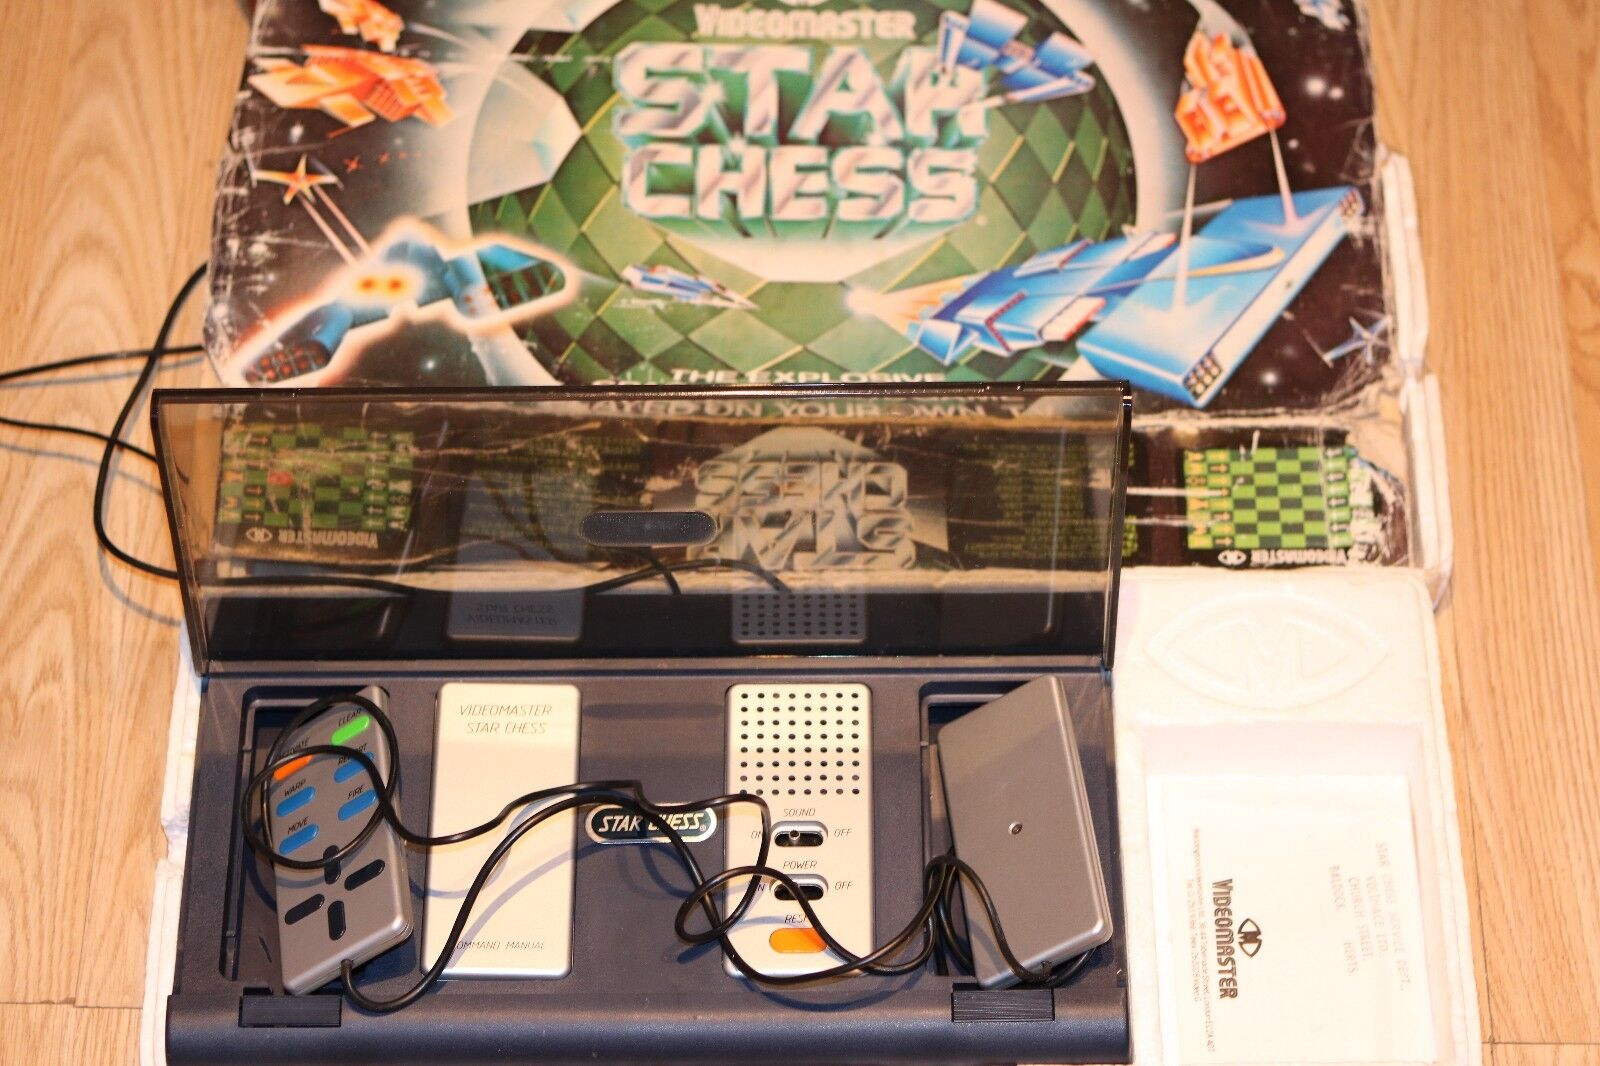 RARE VINTAGE VIDEOMASTER STAR CHESS ELECTRONIC GAME WORKING 1979